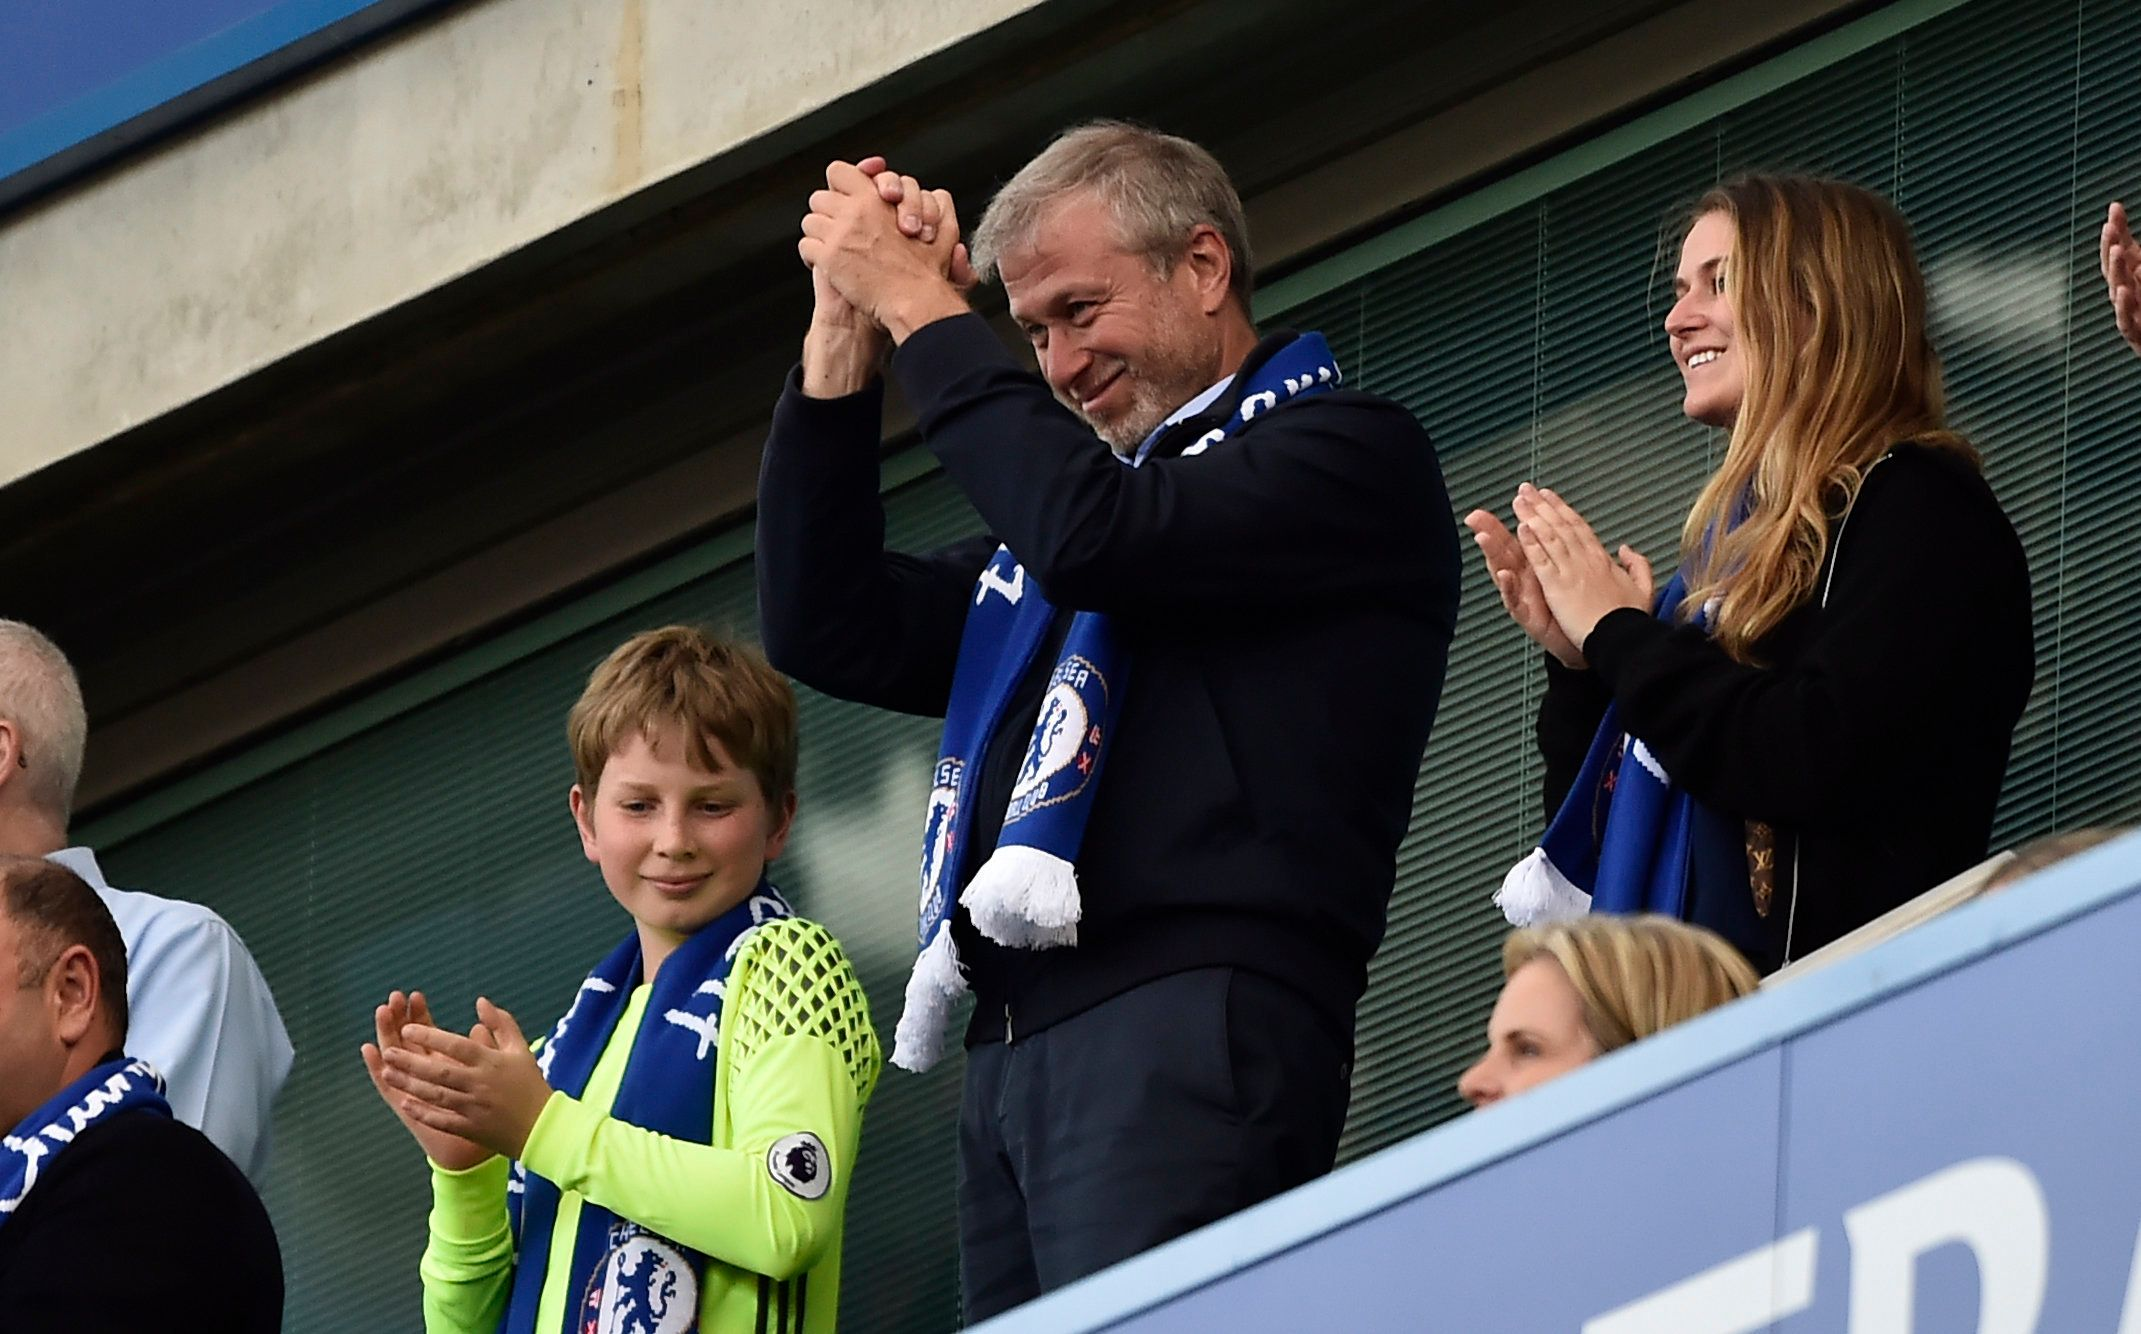 Chelsea owner Abramovich becomes Israeli citizen after problems with United Kingdom  visa